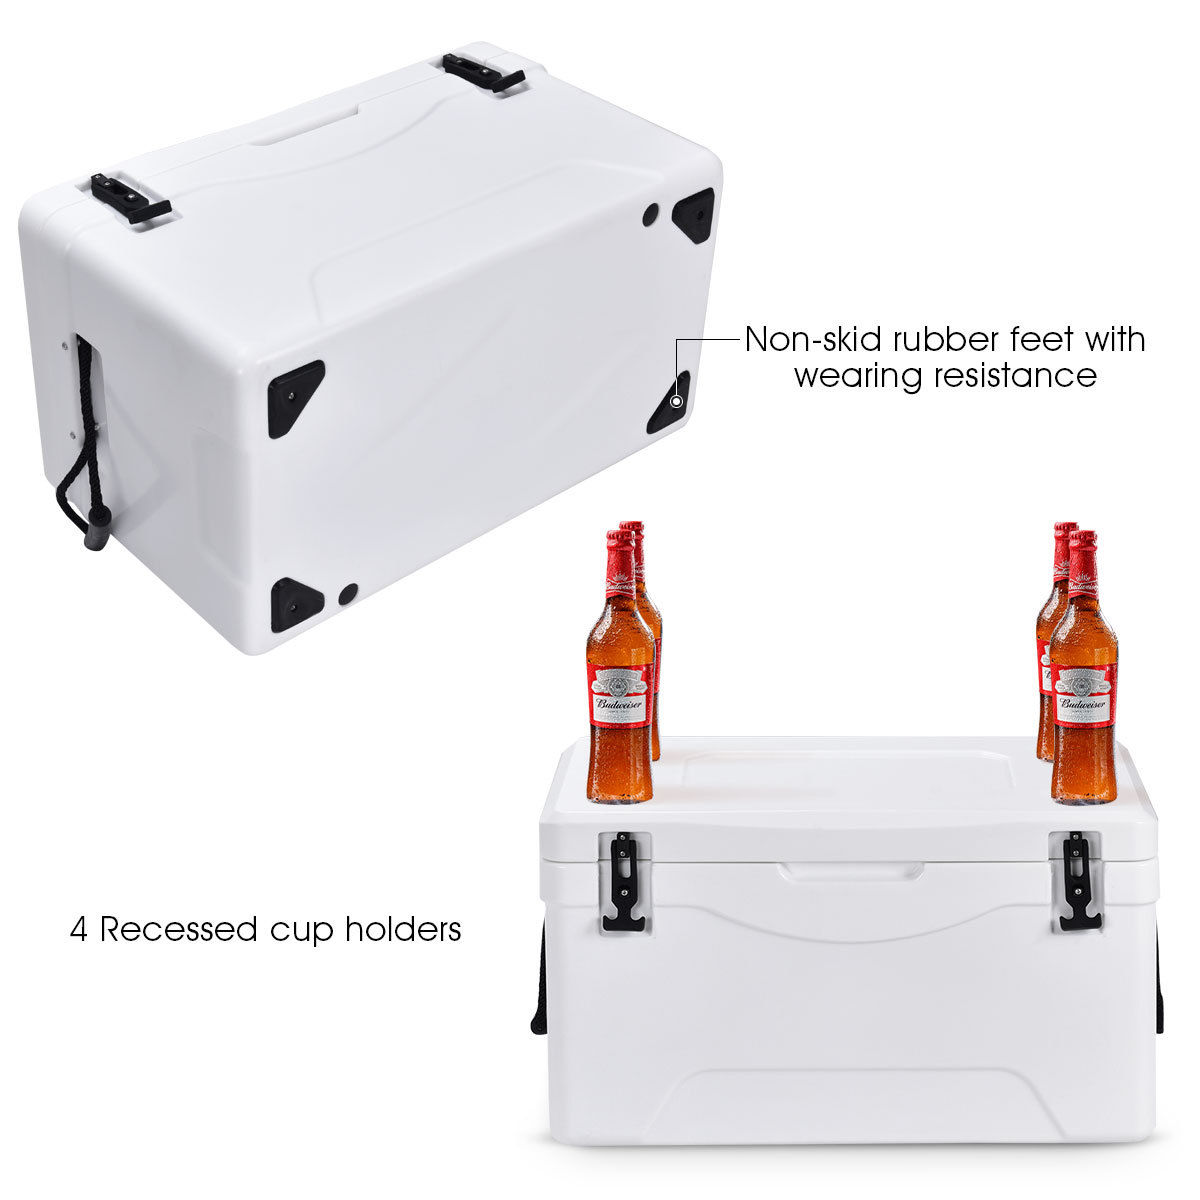 Heavy Duty Outdoor Insulated Fishing Hunting Cooler Ice Chest 64 Quart White - image 4 de 10